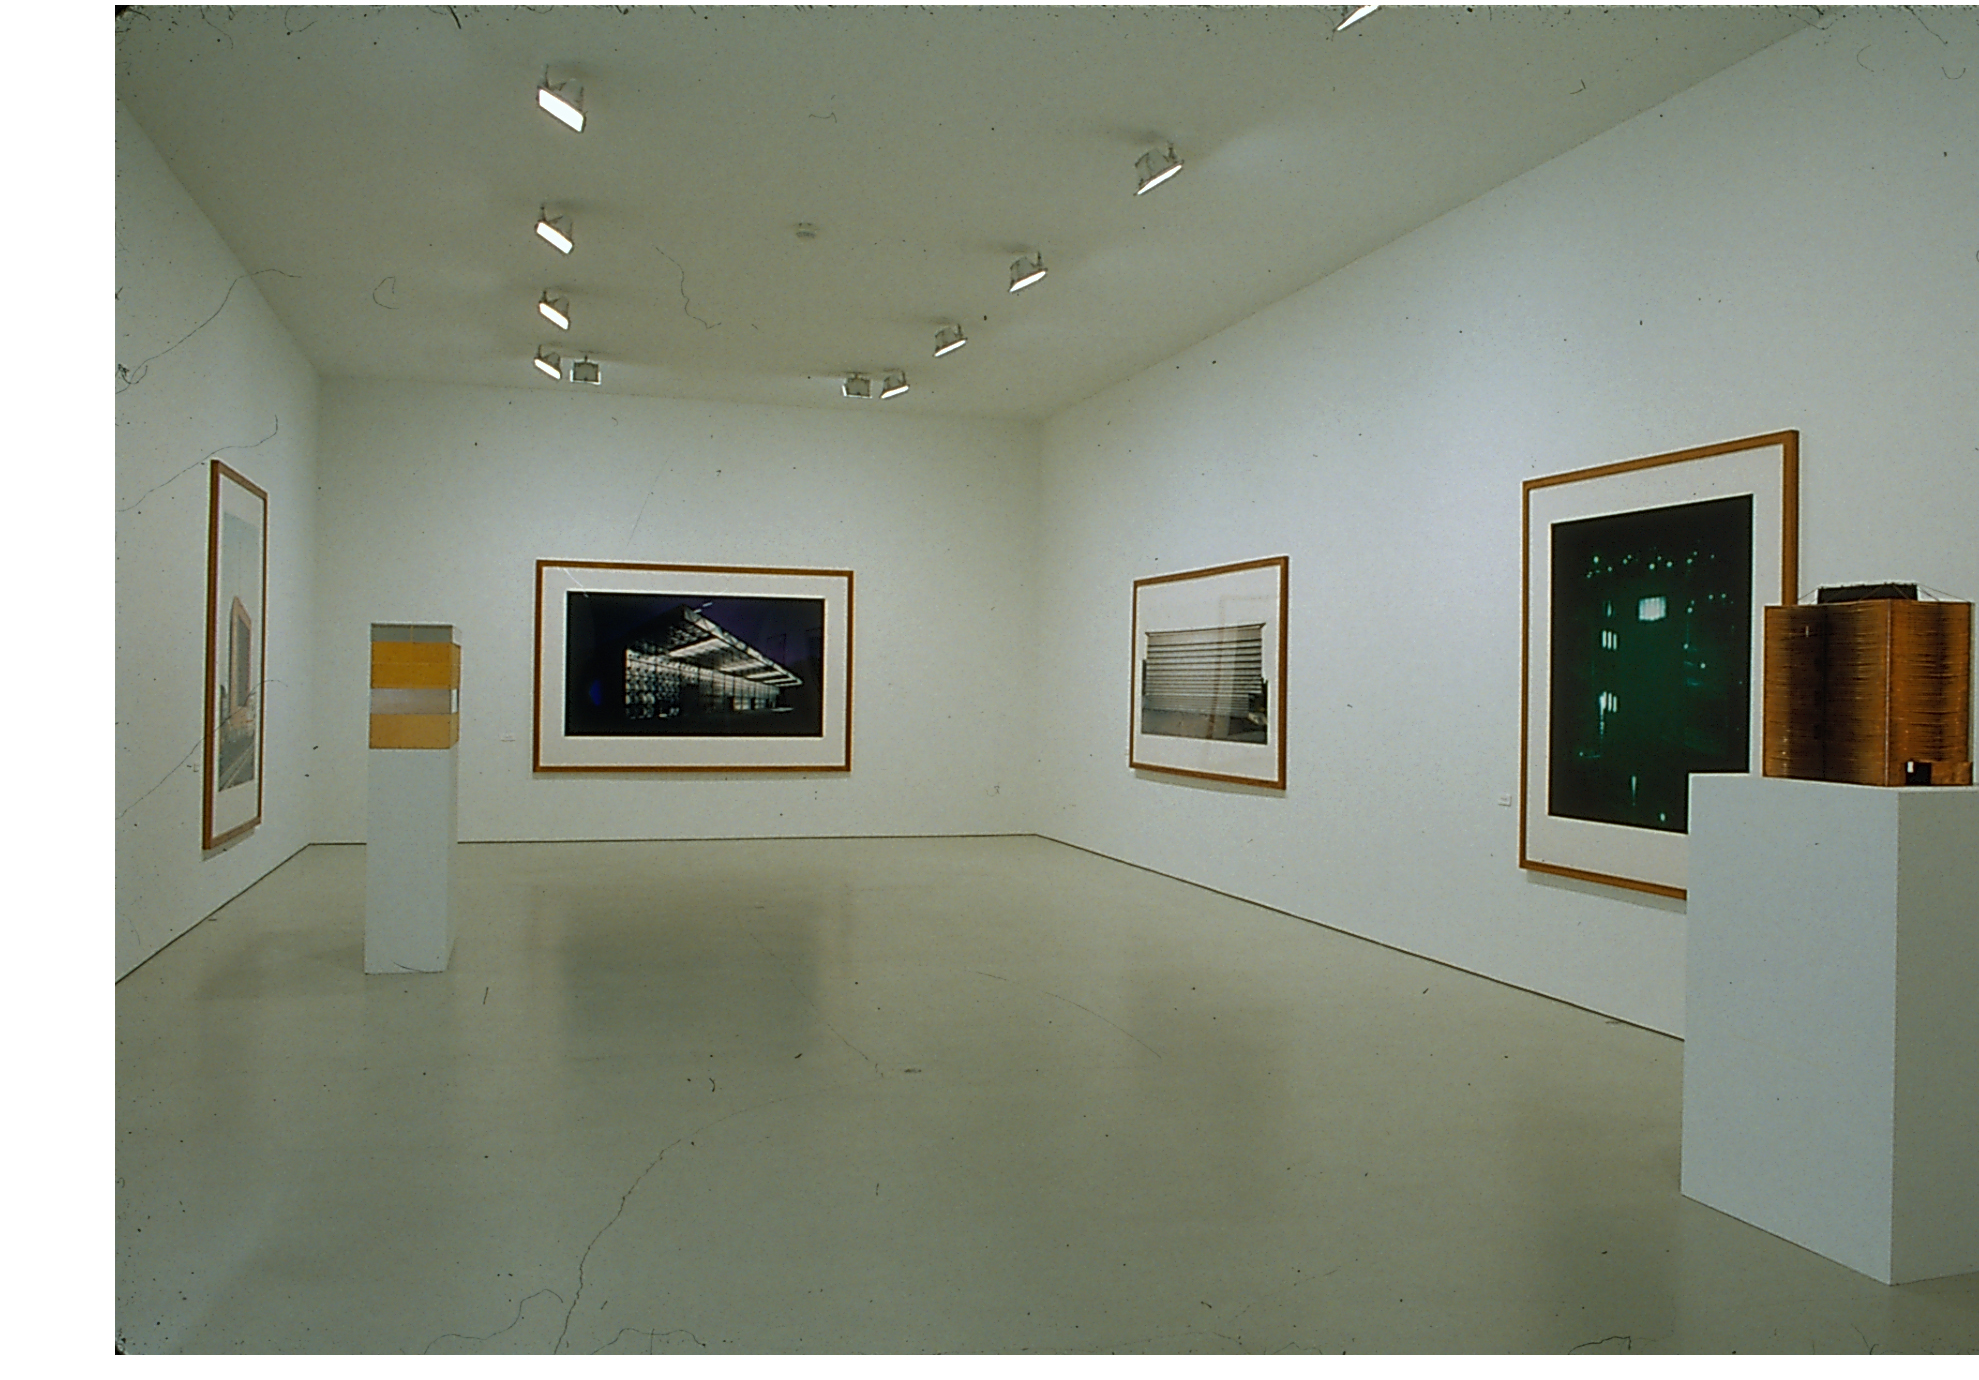 Installation shot hm 1994 2 copy